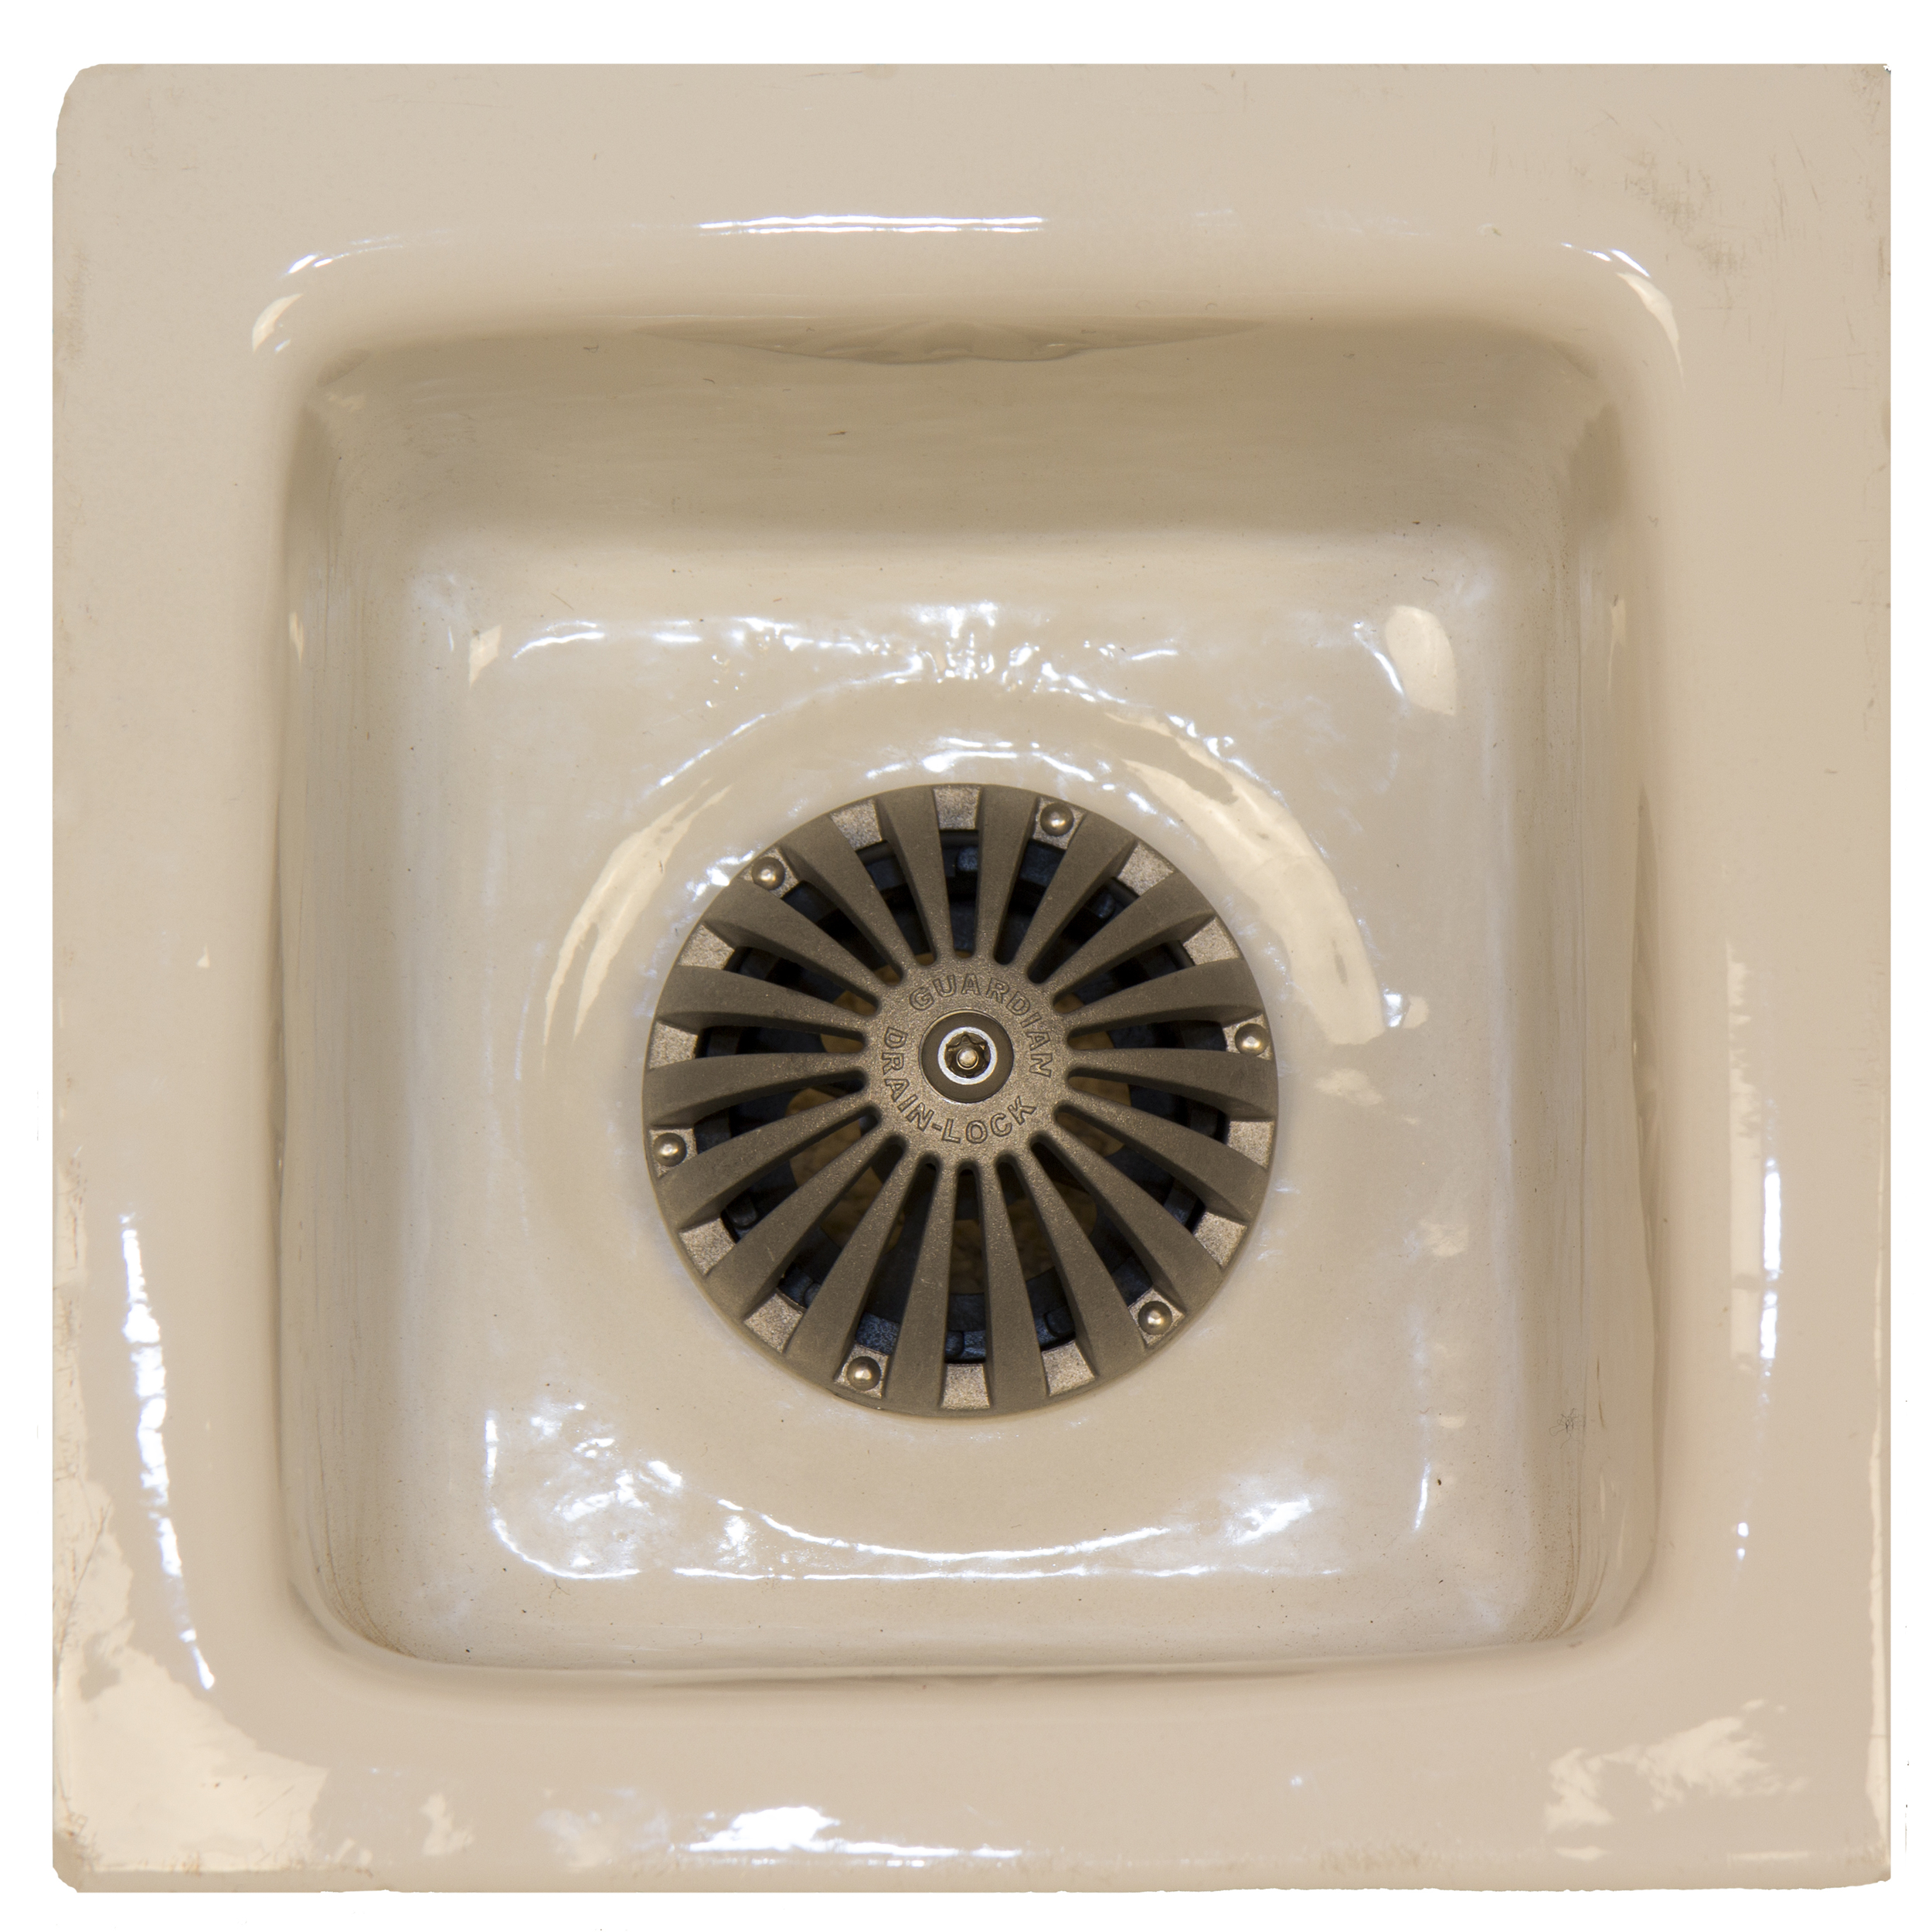 4in Dome D Lock In Sink.jpg